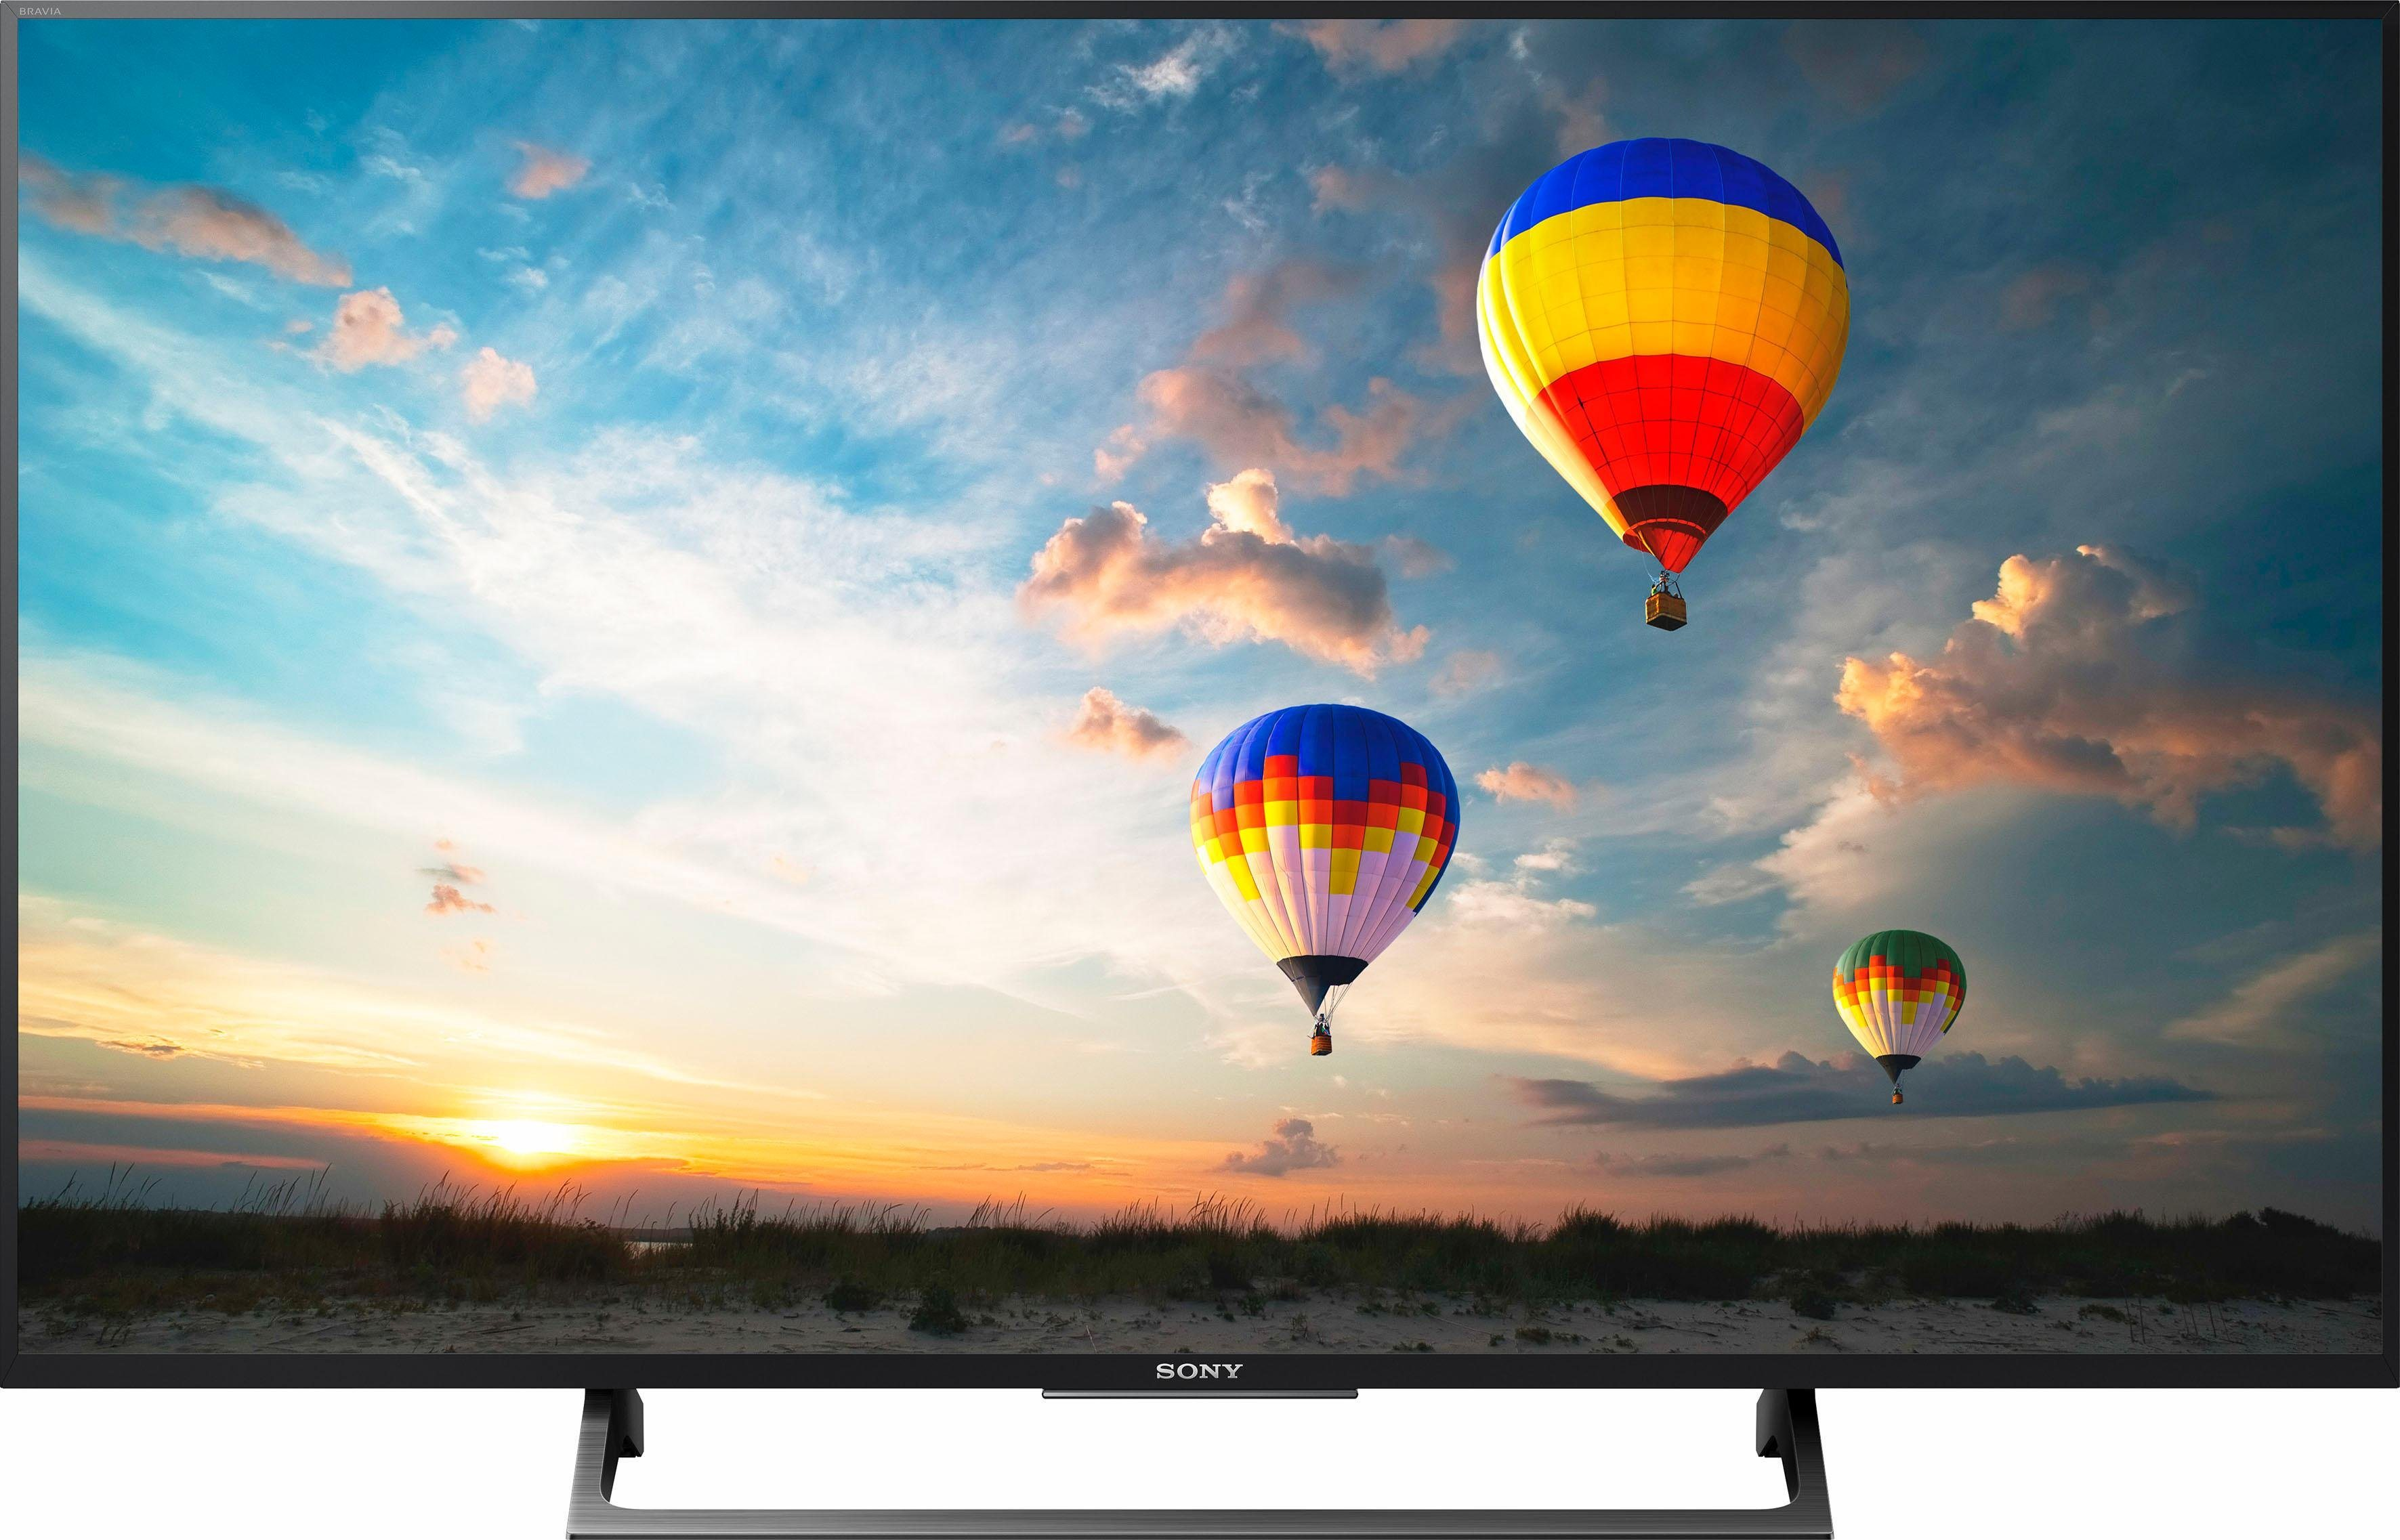 Sony Bravia KD-49XE8005 - 4k Ultra HD mit Edge LED Panel und Android TV